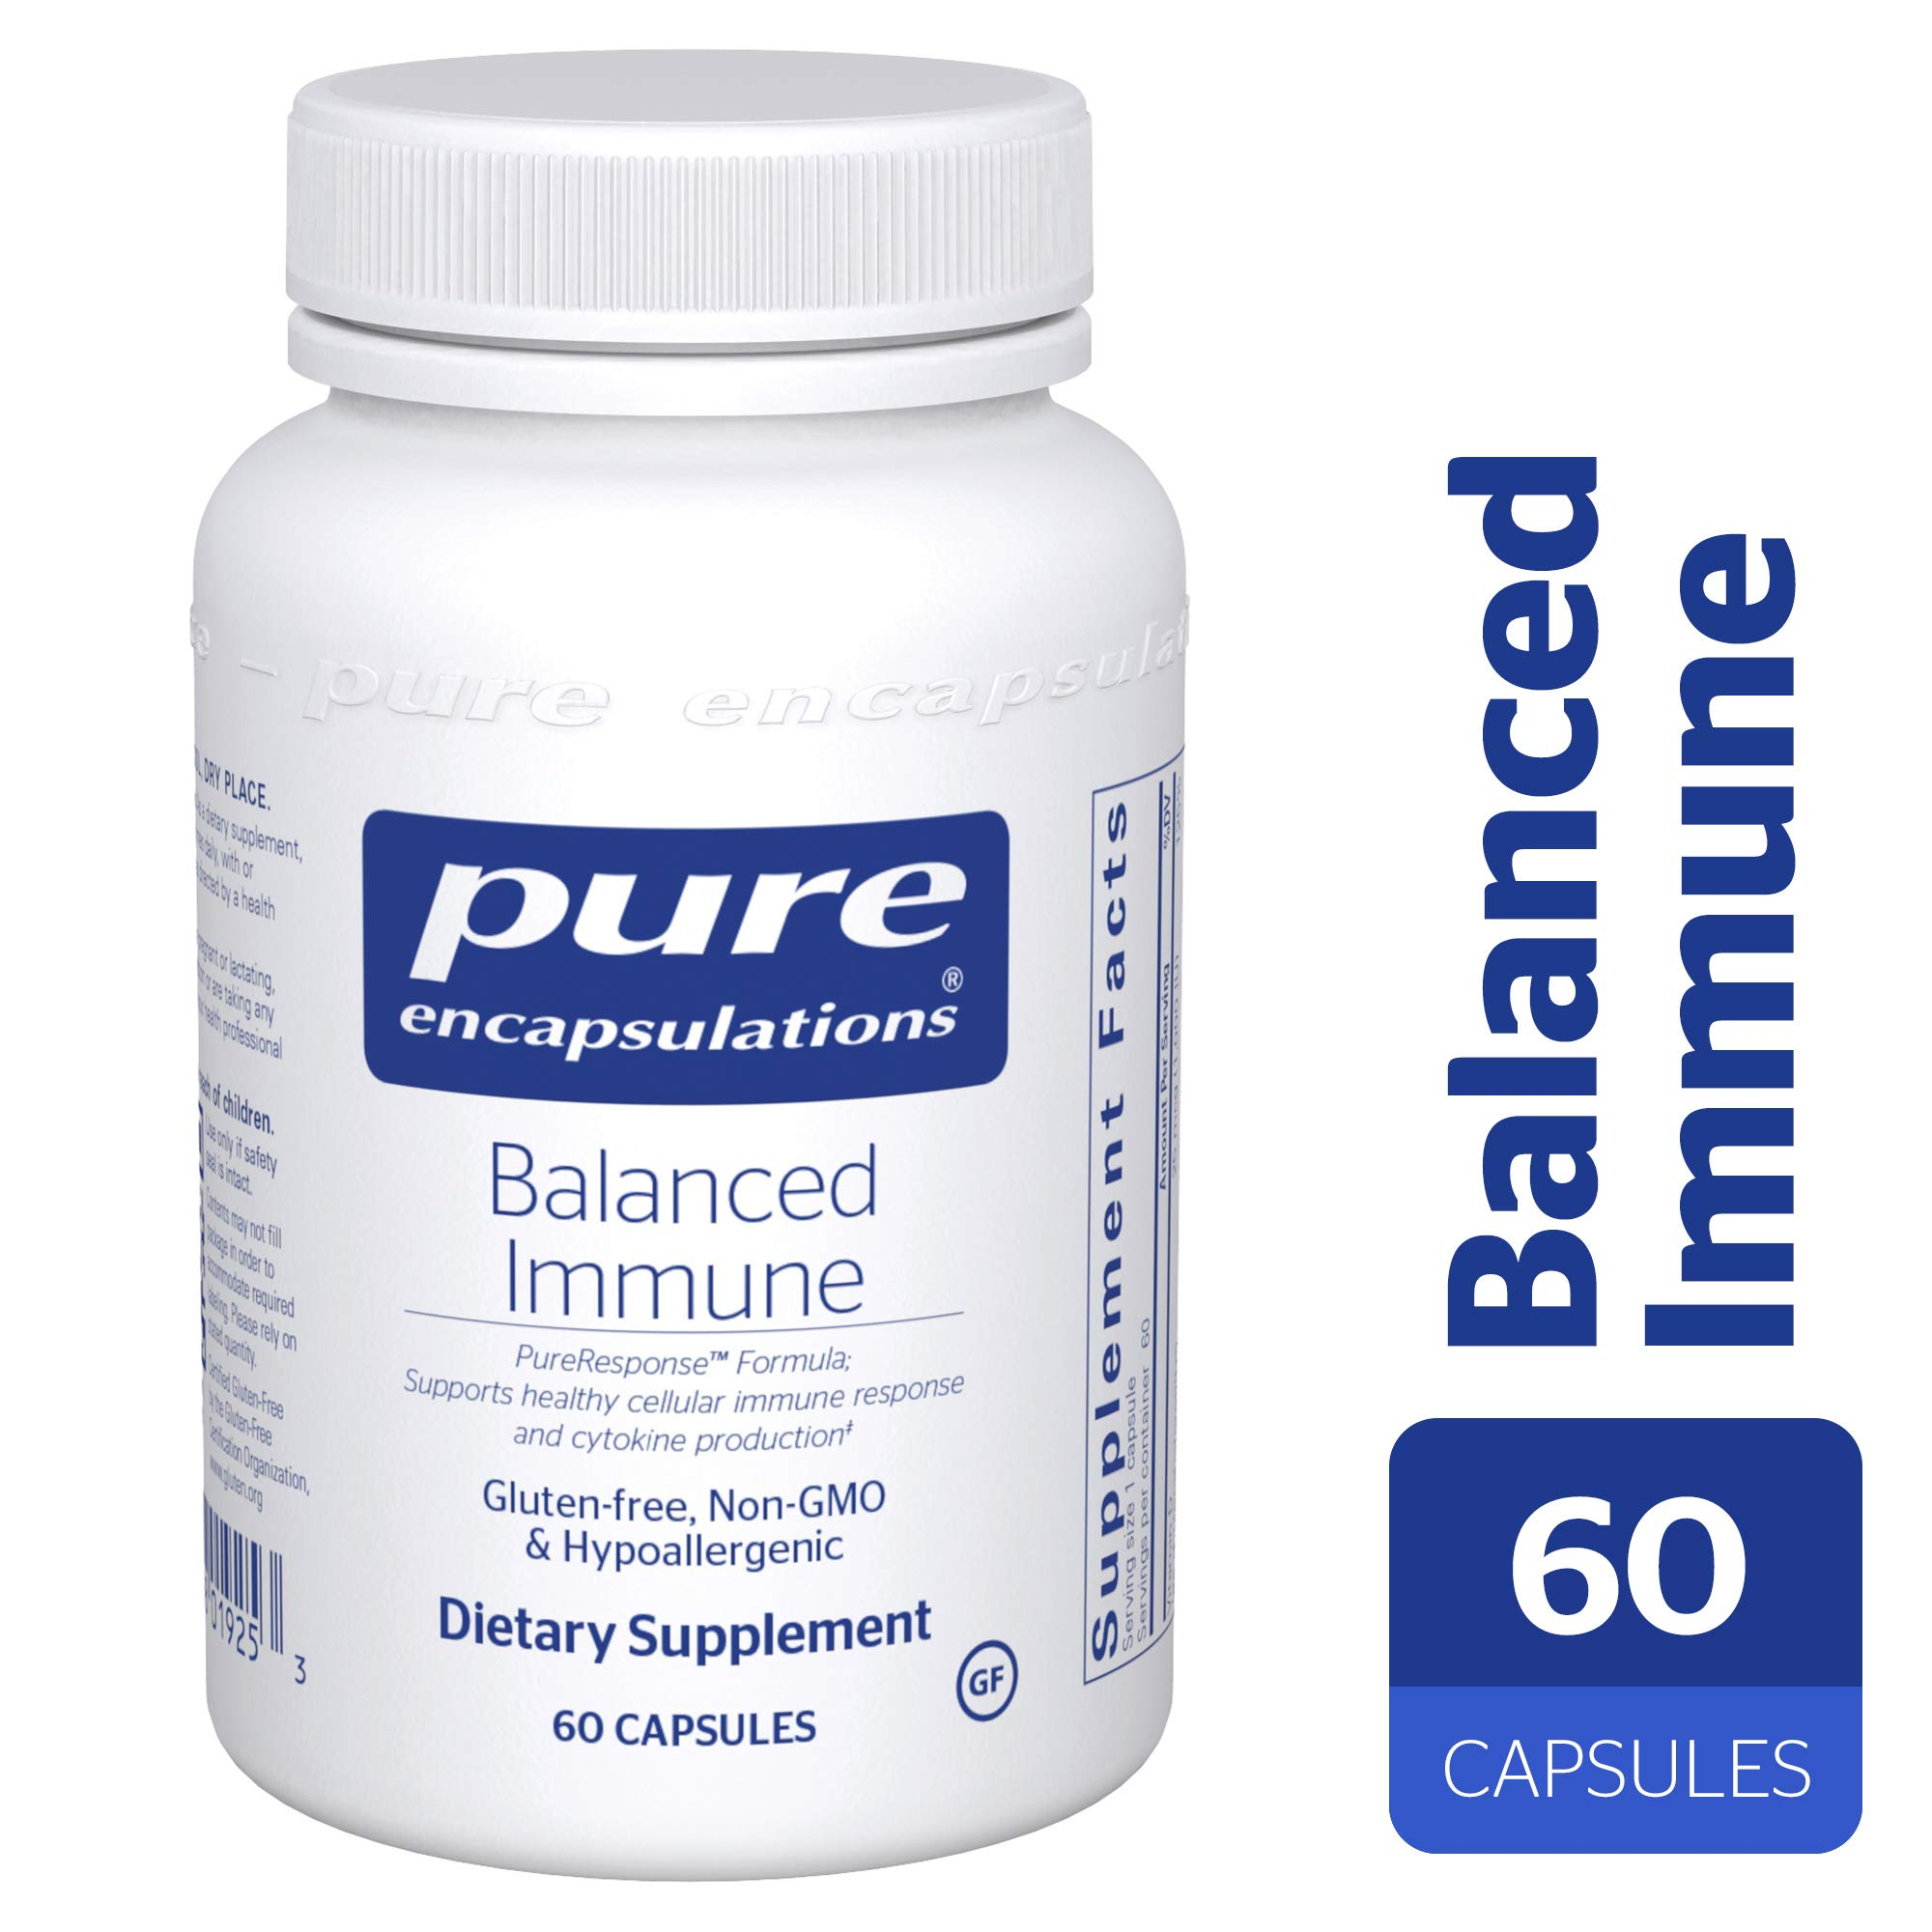 Pure Encapsulations - Balanced Immune - Joint, Gastrointestinal and Thyroid Function Support* - 60 Capsules by Pure Encapsulations